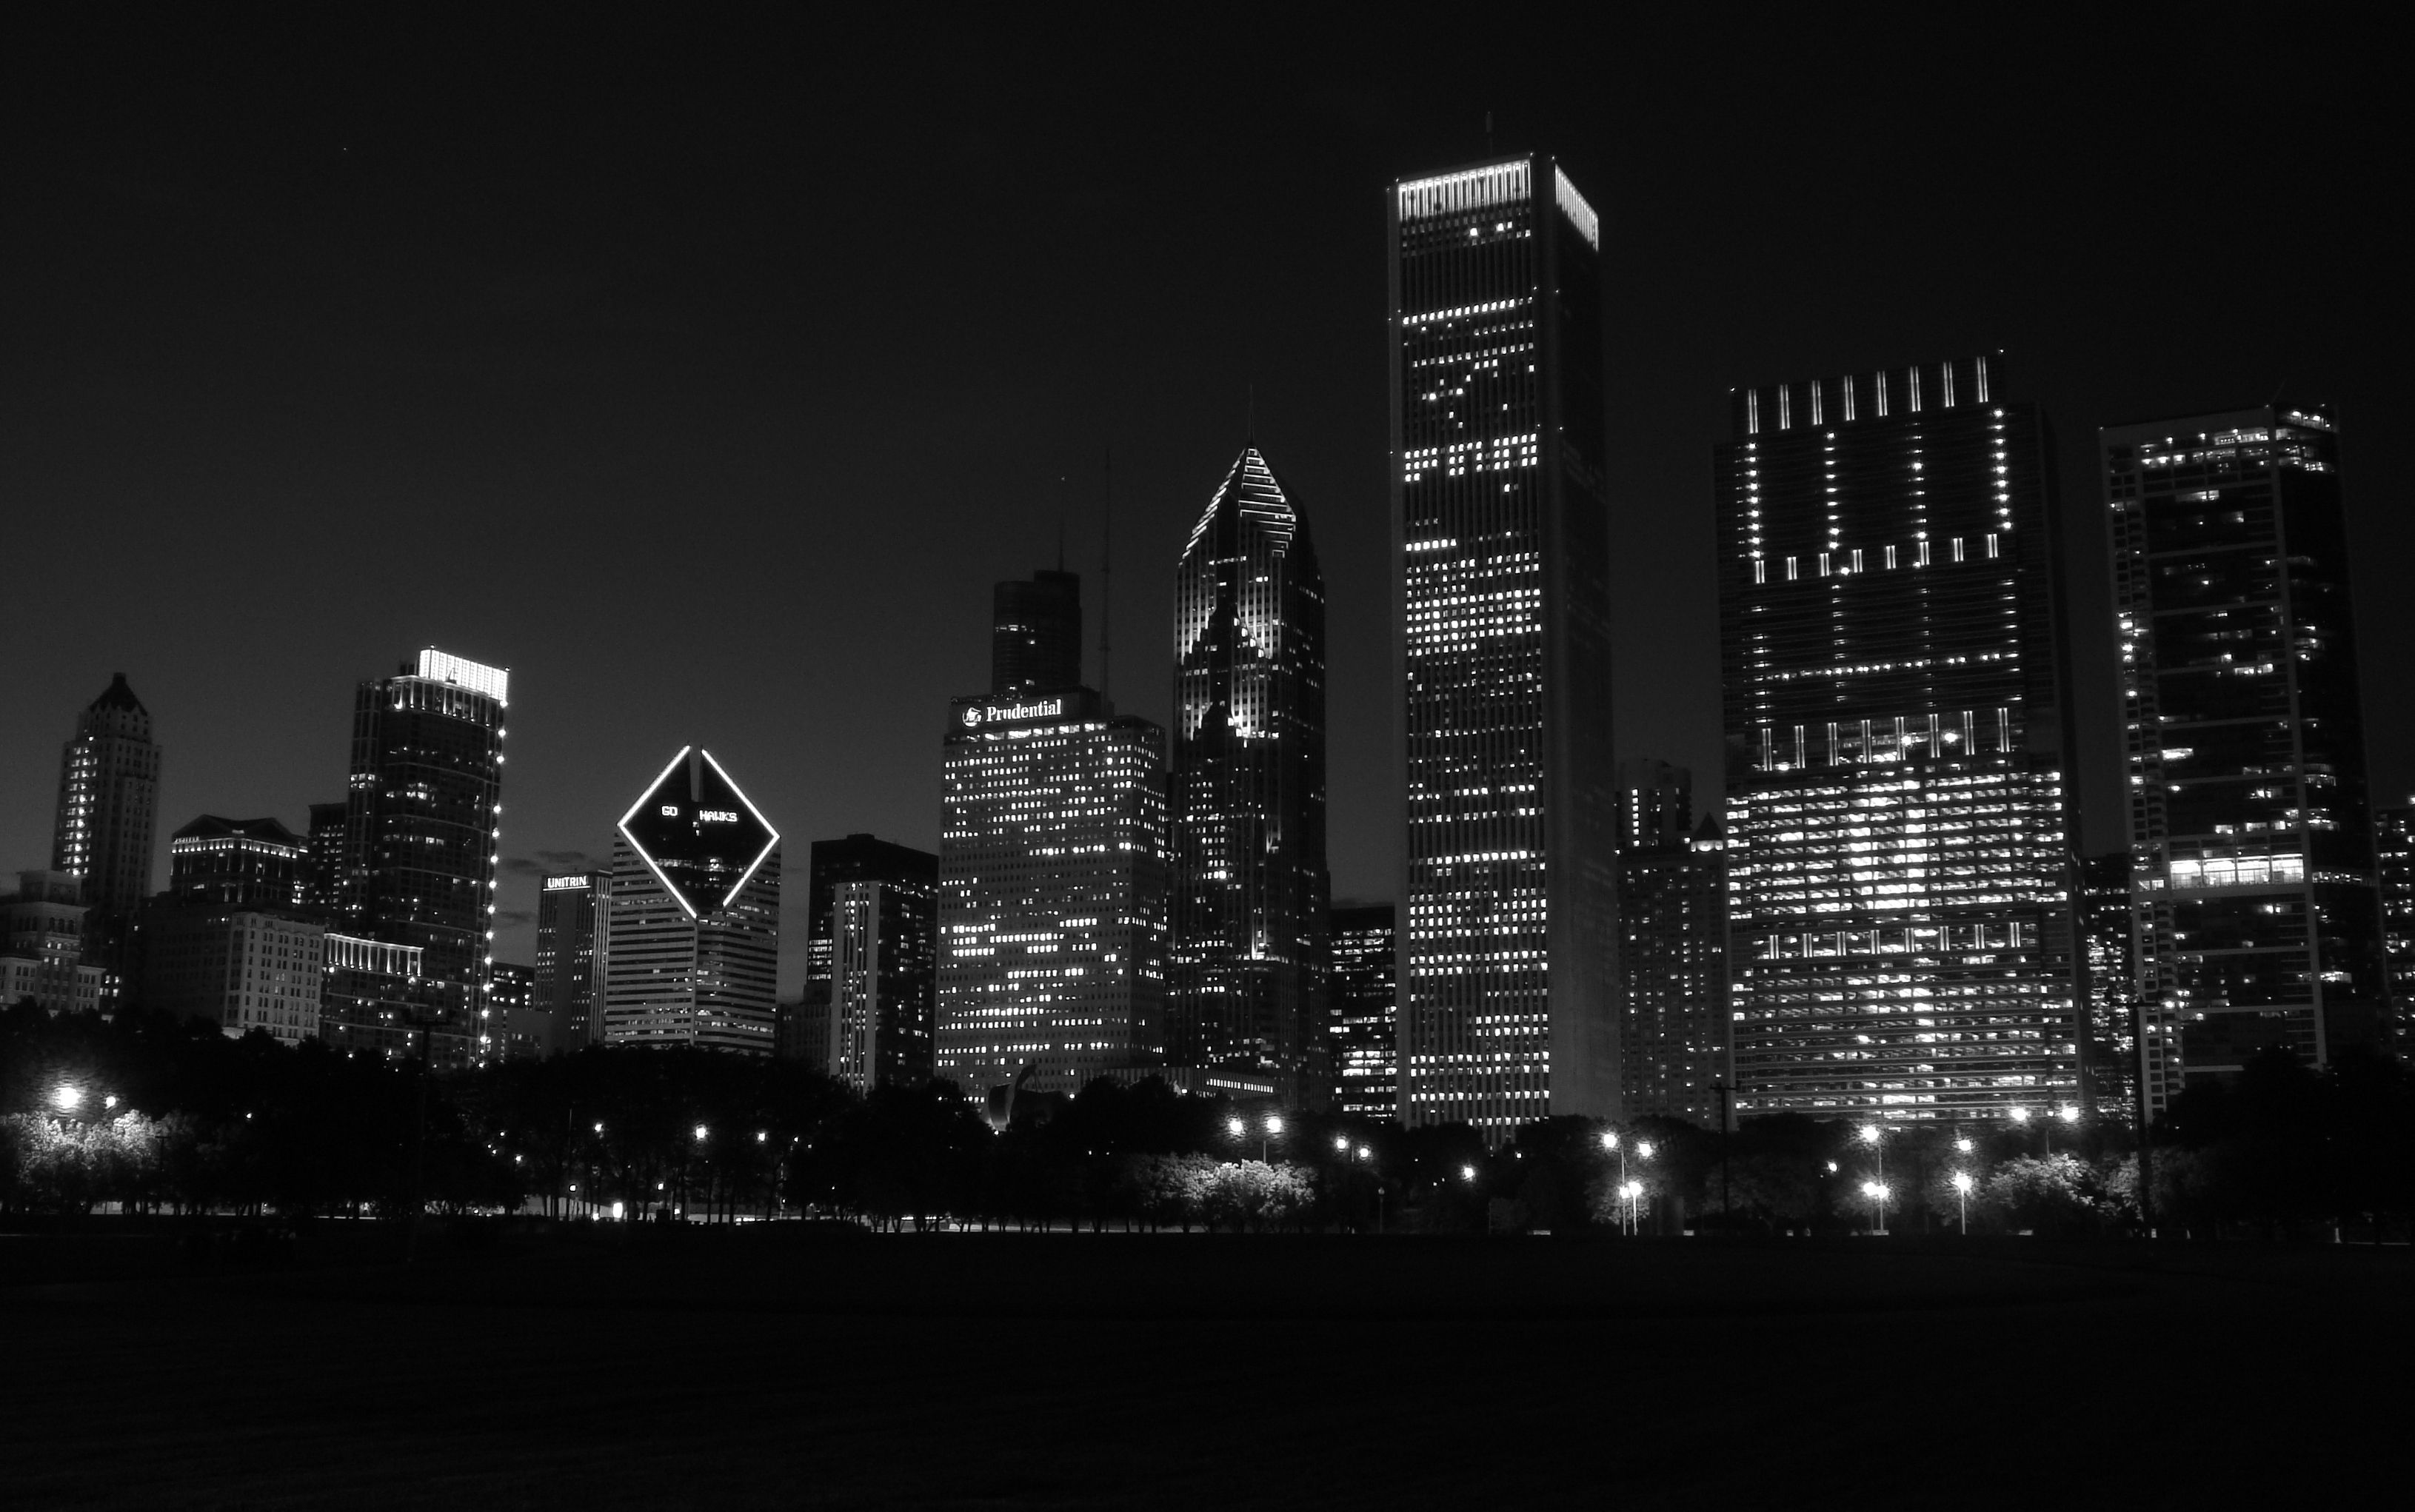 Cityscape night wallpapers top free cityscape night backgrounds wallpaperaccess - Skyline night wallpaper ...